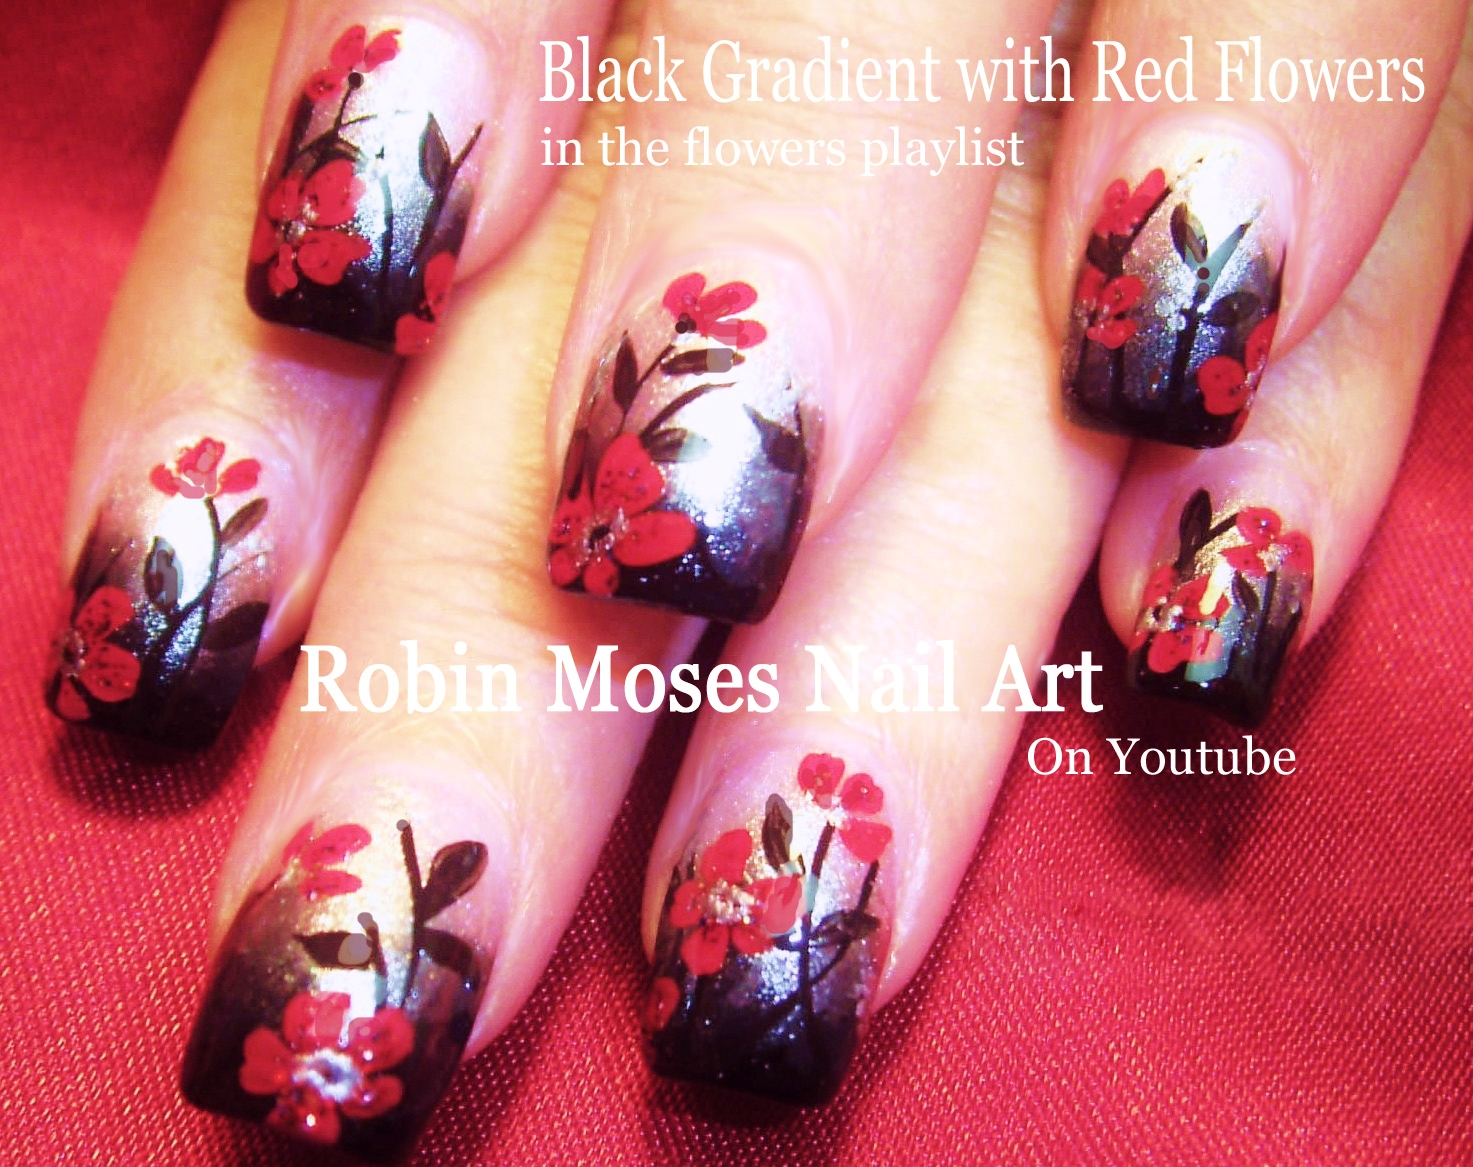 Robin moses nail art diy fall nails red flowers on black and flower nails playlist easy floral nail art flower nail tutorials for beginners advanced nail techs prinsesfo Images